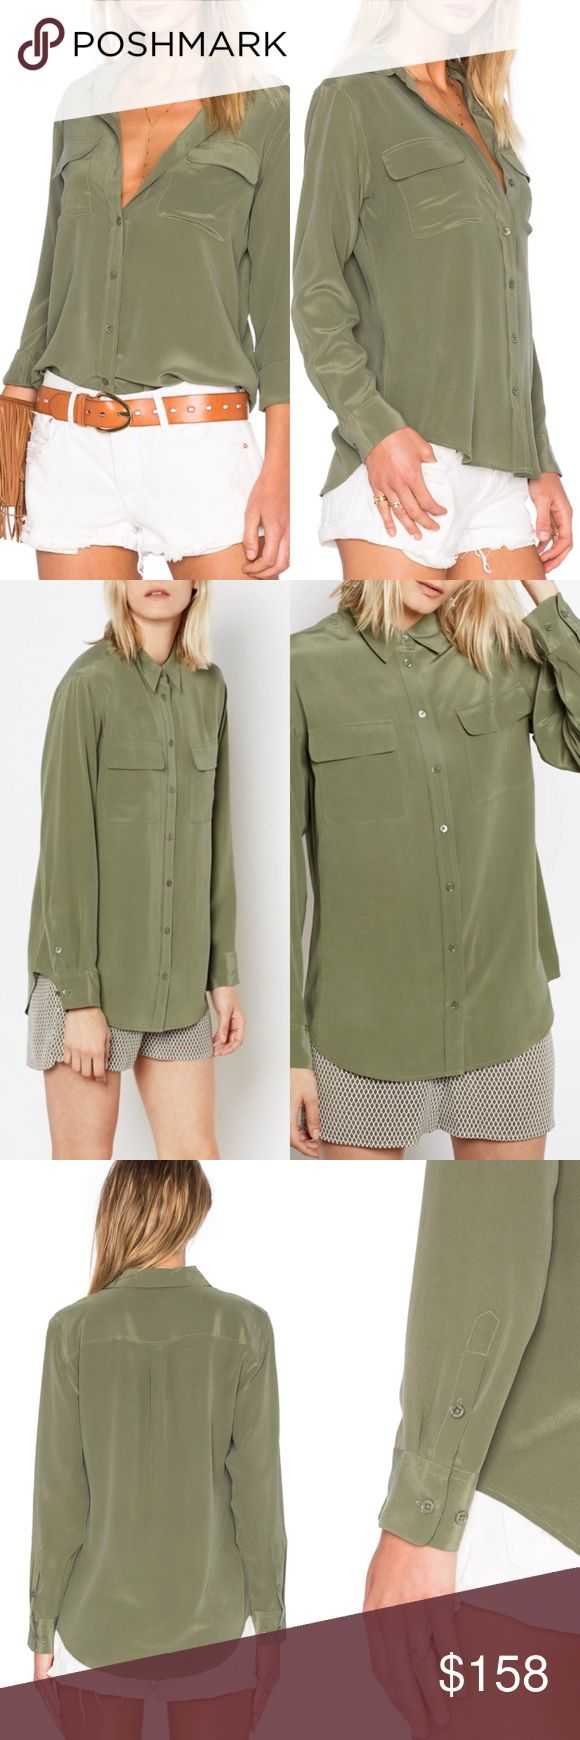 NWT Equipment Olive Green Silk Top Inspired by Equipment's archived original from the '70s, their Signature Shirt is a timeless classic. Oversized with two front pockets, the Signature is a versatile wardrobe staple that works just as well tucked into a pencil skirt as it does untucked with a pair of jeans. Slightly oversized.  Details:  100% silk. Dry clean. Imported. No trades; price firm - this item is new with tags. Equipment Tops Blouses